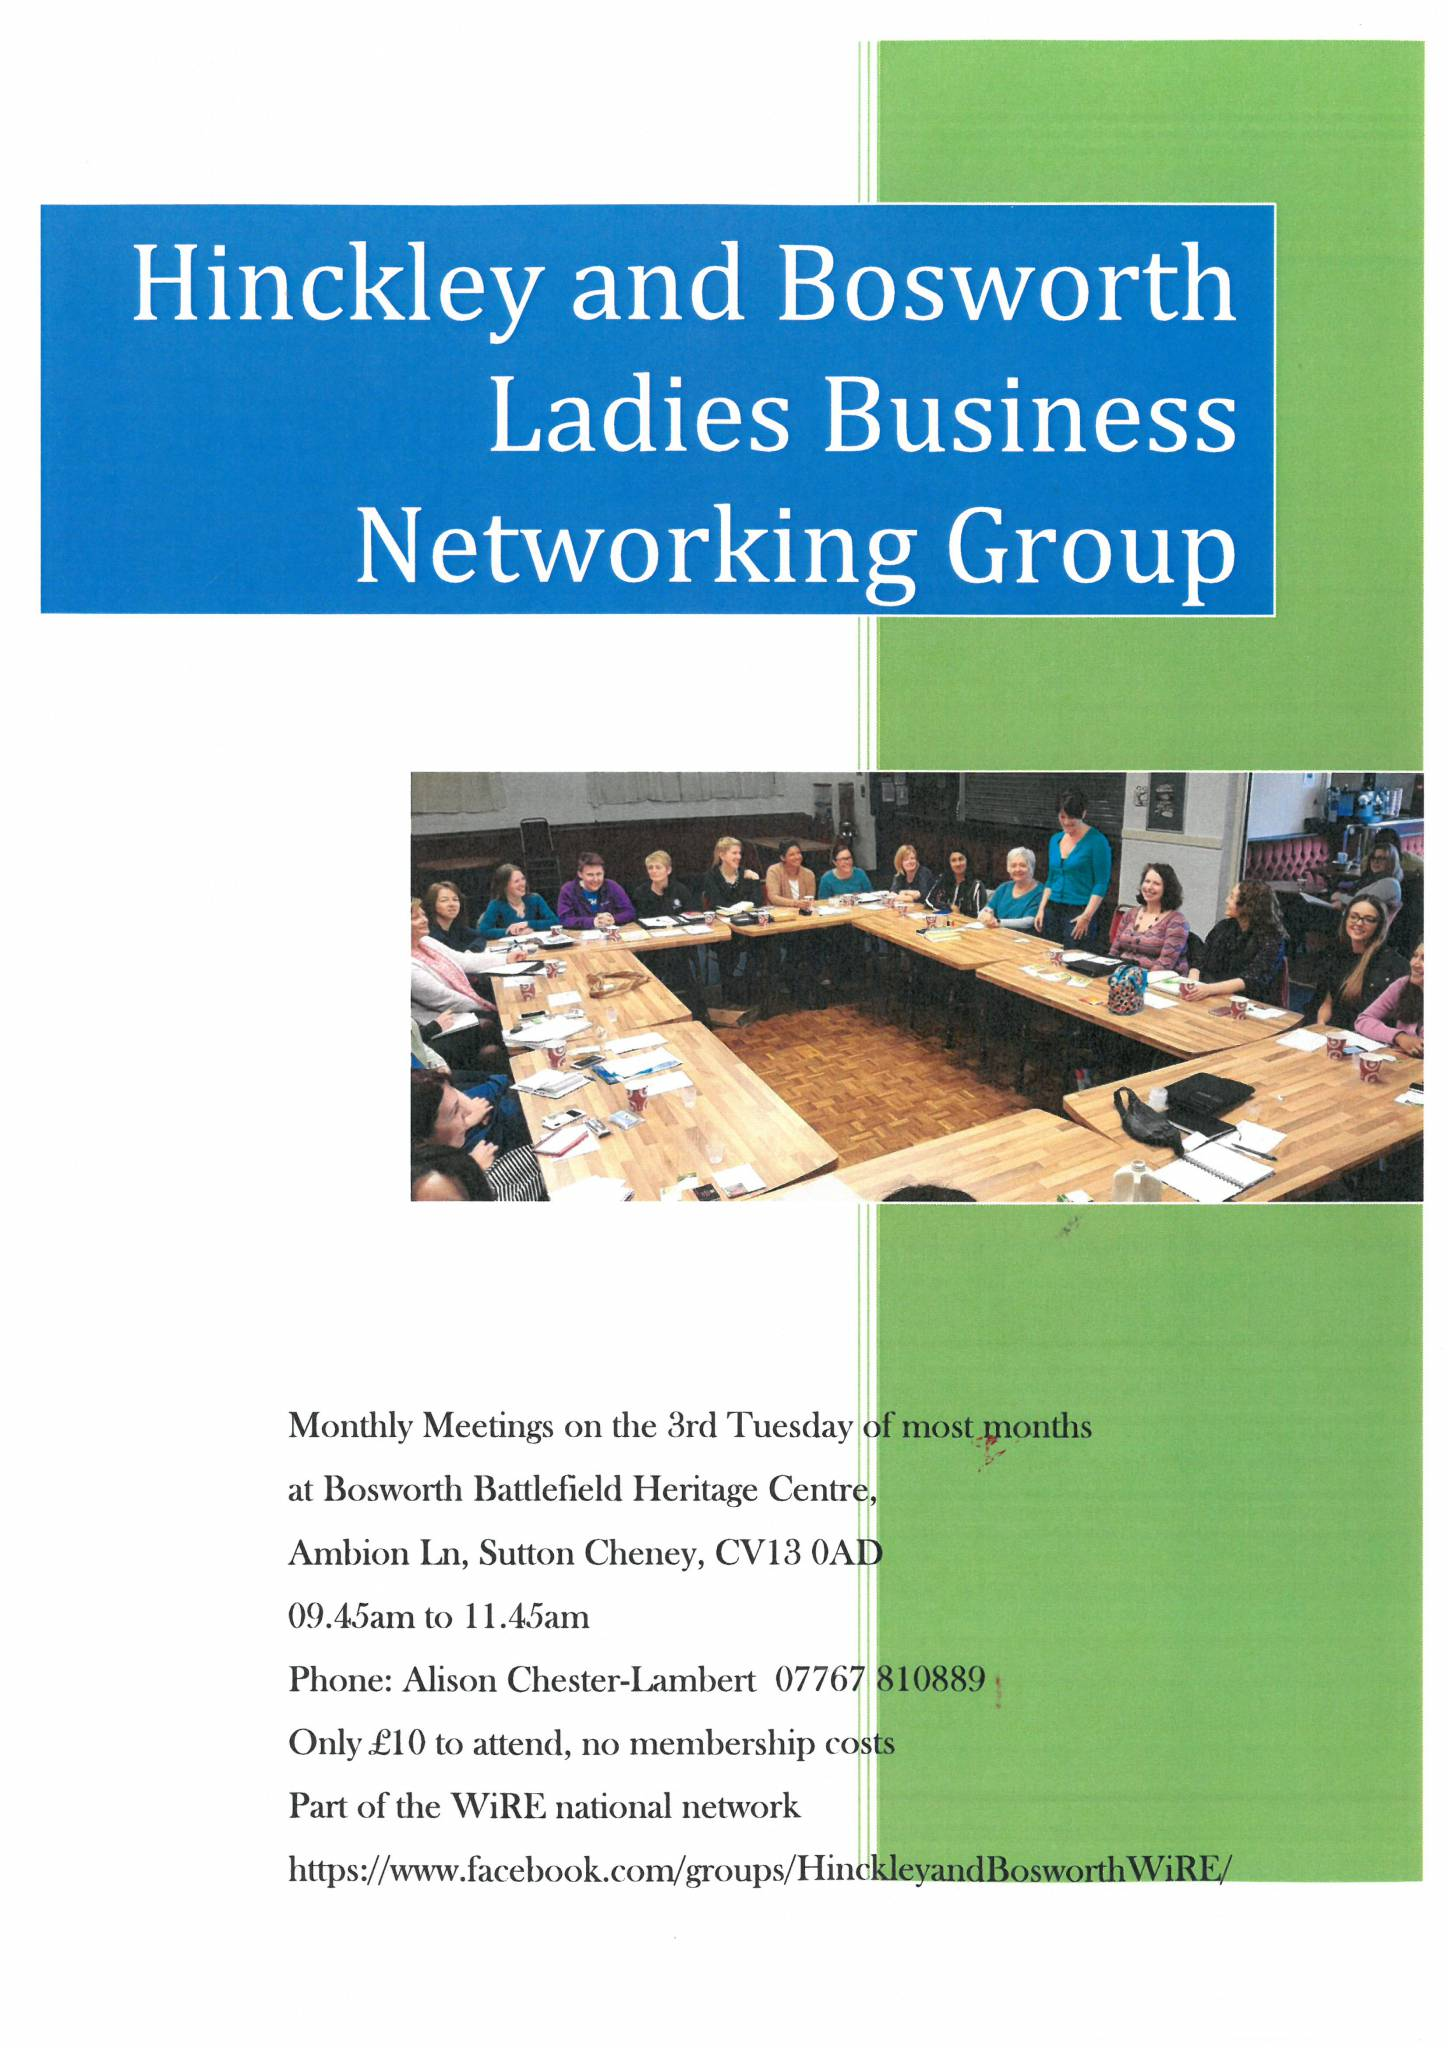 Hinckley & Bosworth Ladies Business Networking Group